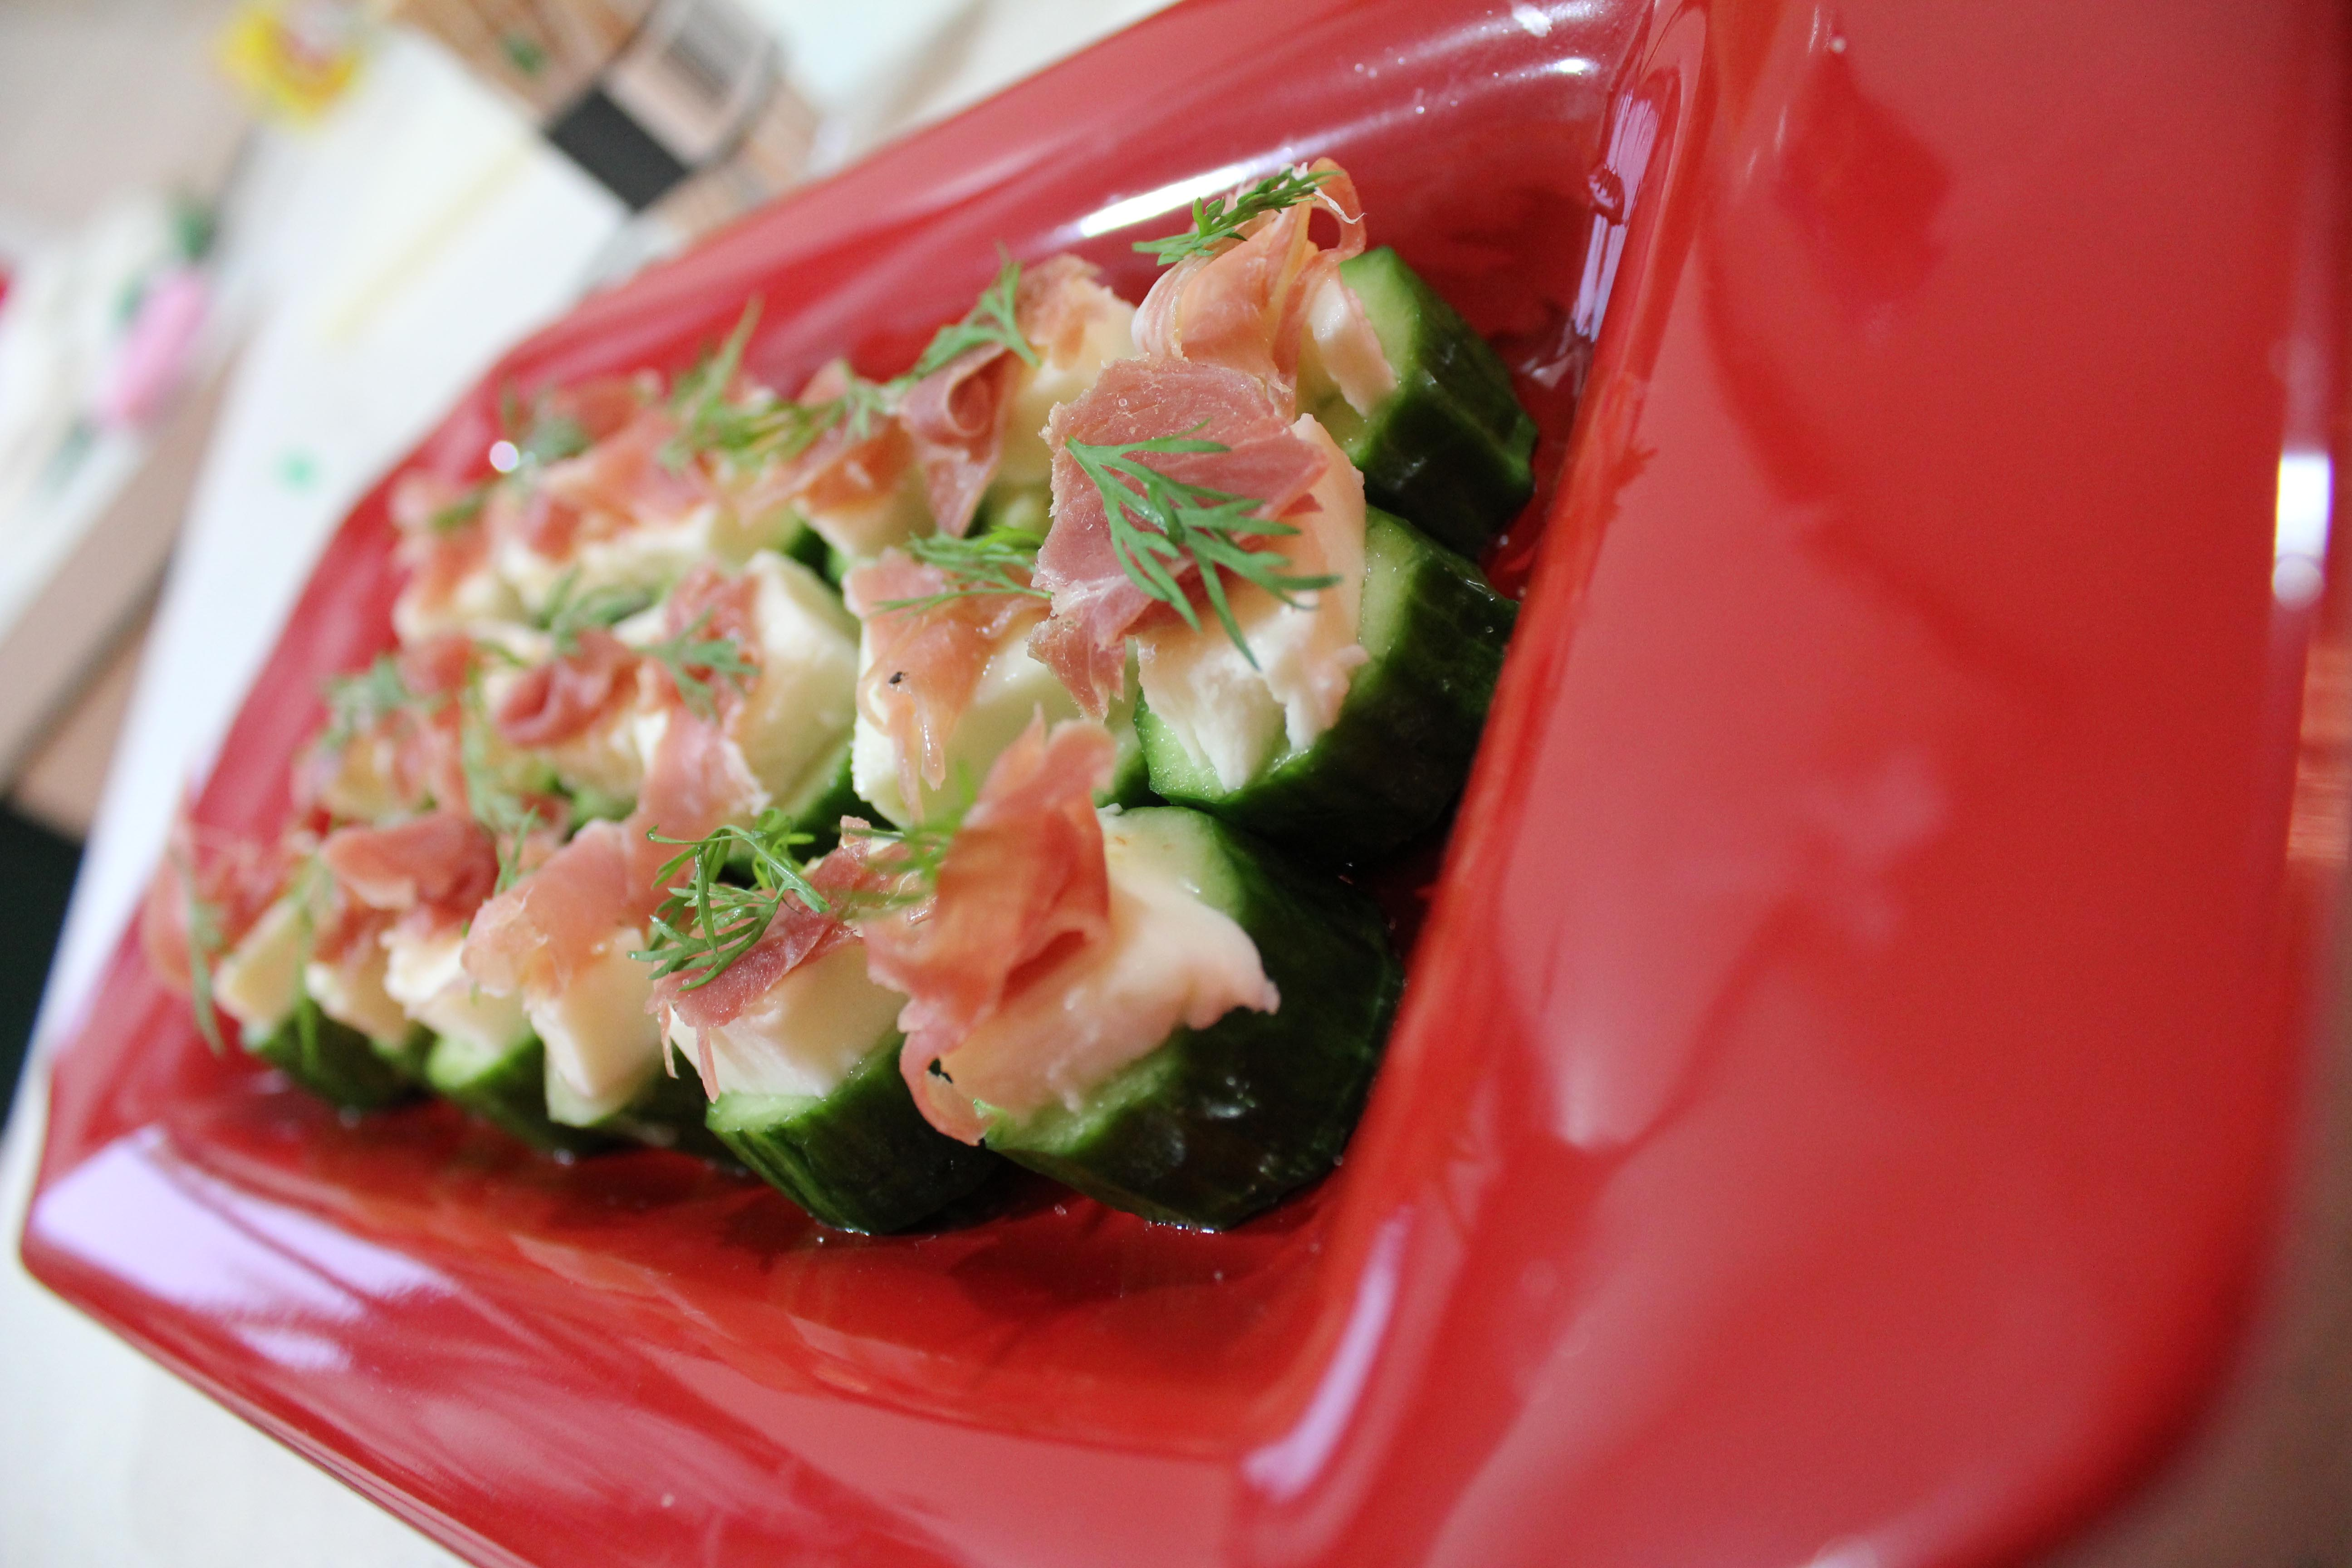 Easy to Make Finger Foods http://savvyentertaining.com/2011/12/16/easy-cucumber-appetizers/